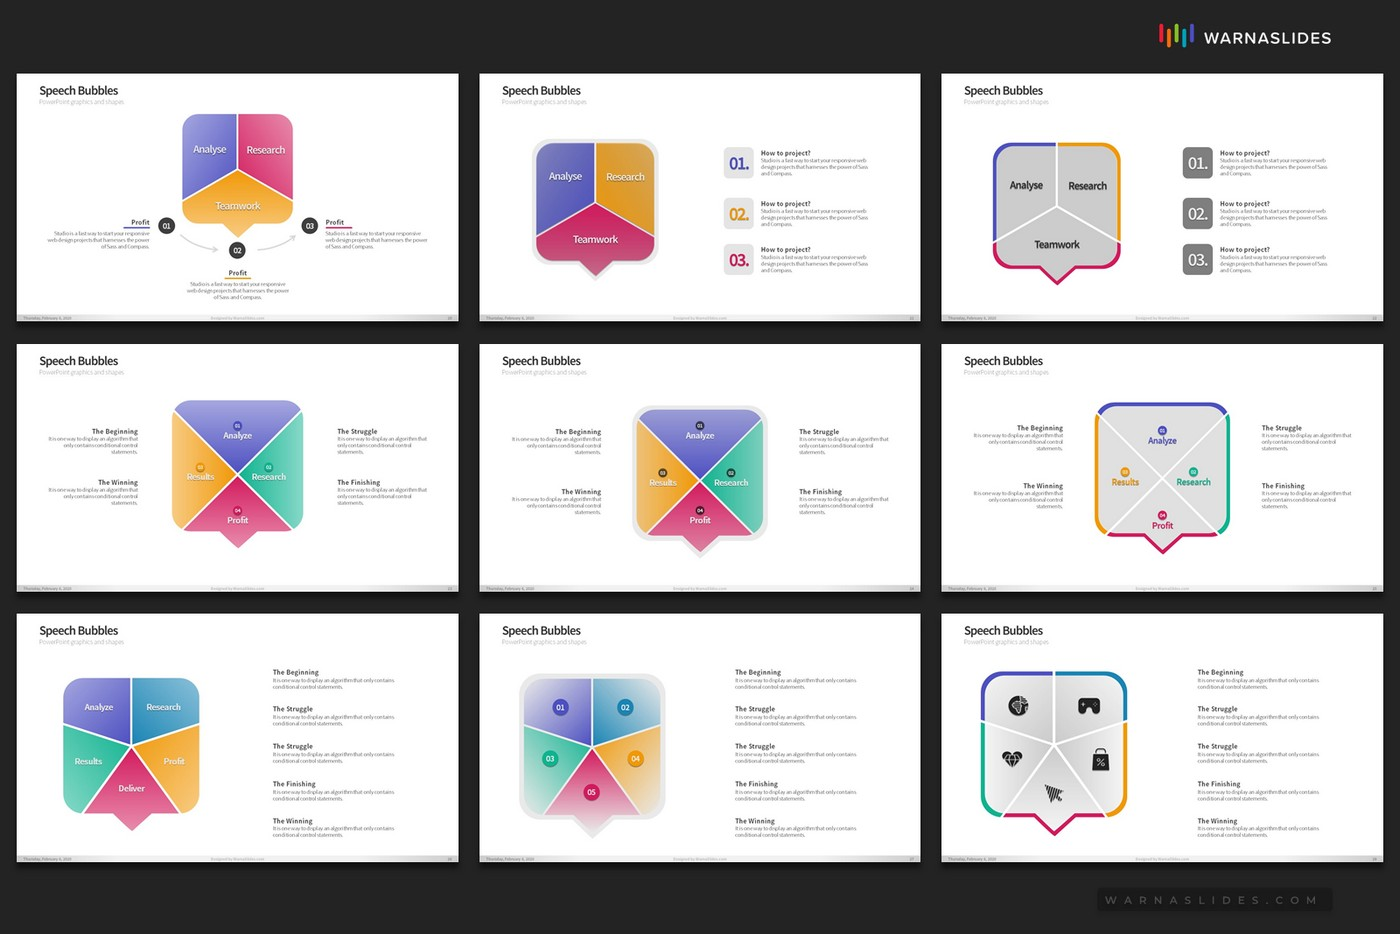 Speech-Bubbles-Communication-PowerPoint-Template-for-Business-Pitch-Deck-Professional-Creative-PowerPoint-Icons-008